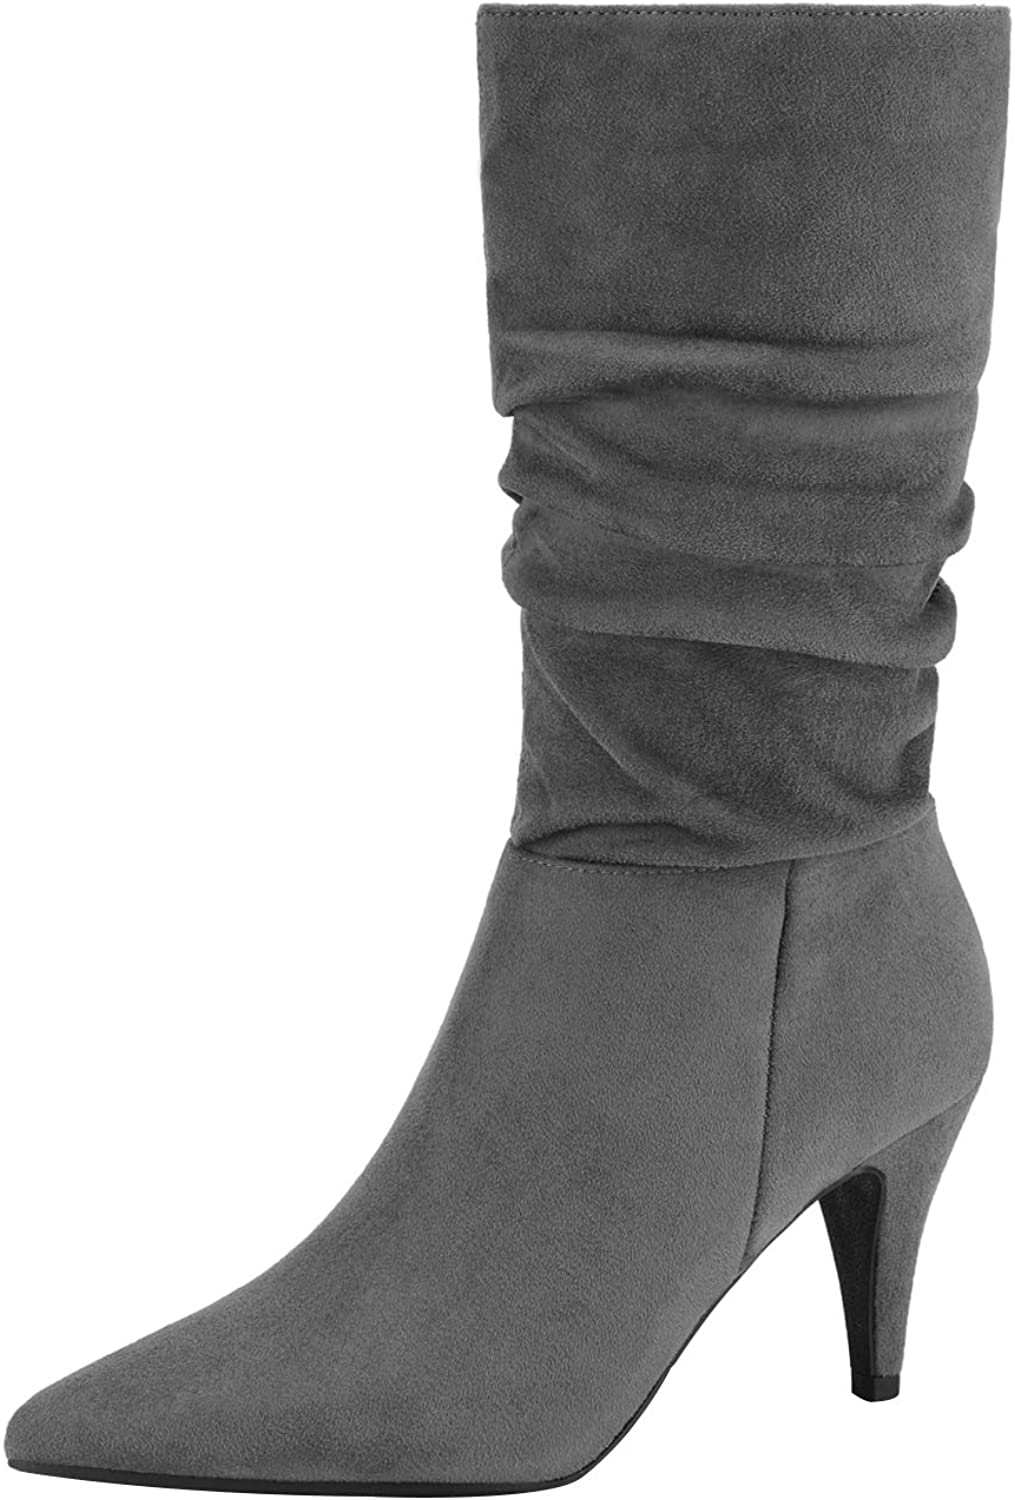 DREAM PAIRS Women's High Mid Boots 70% OFF Outlet Calf Max 79% OFF Heel